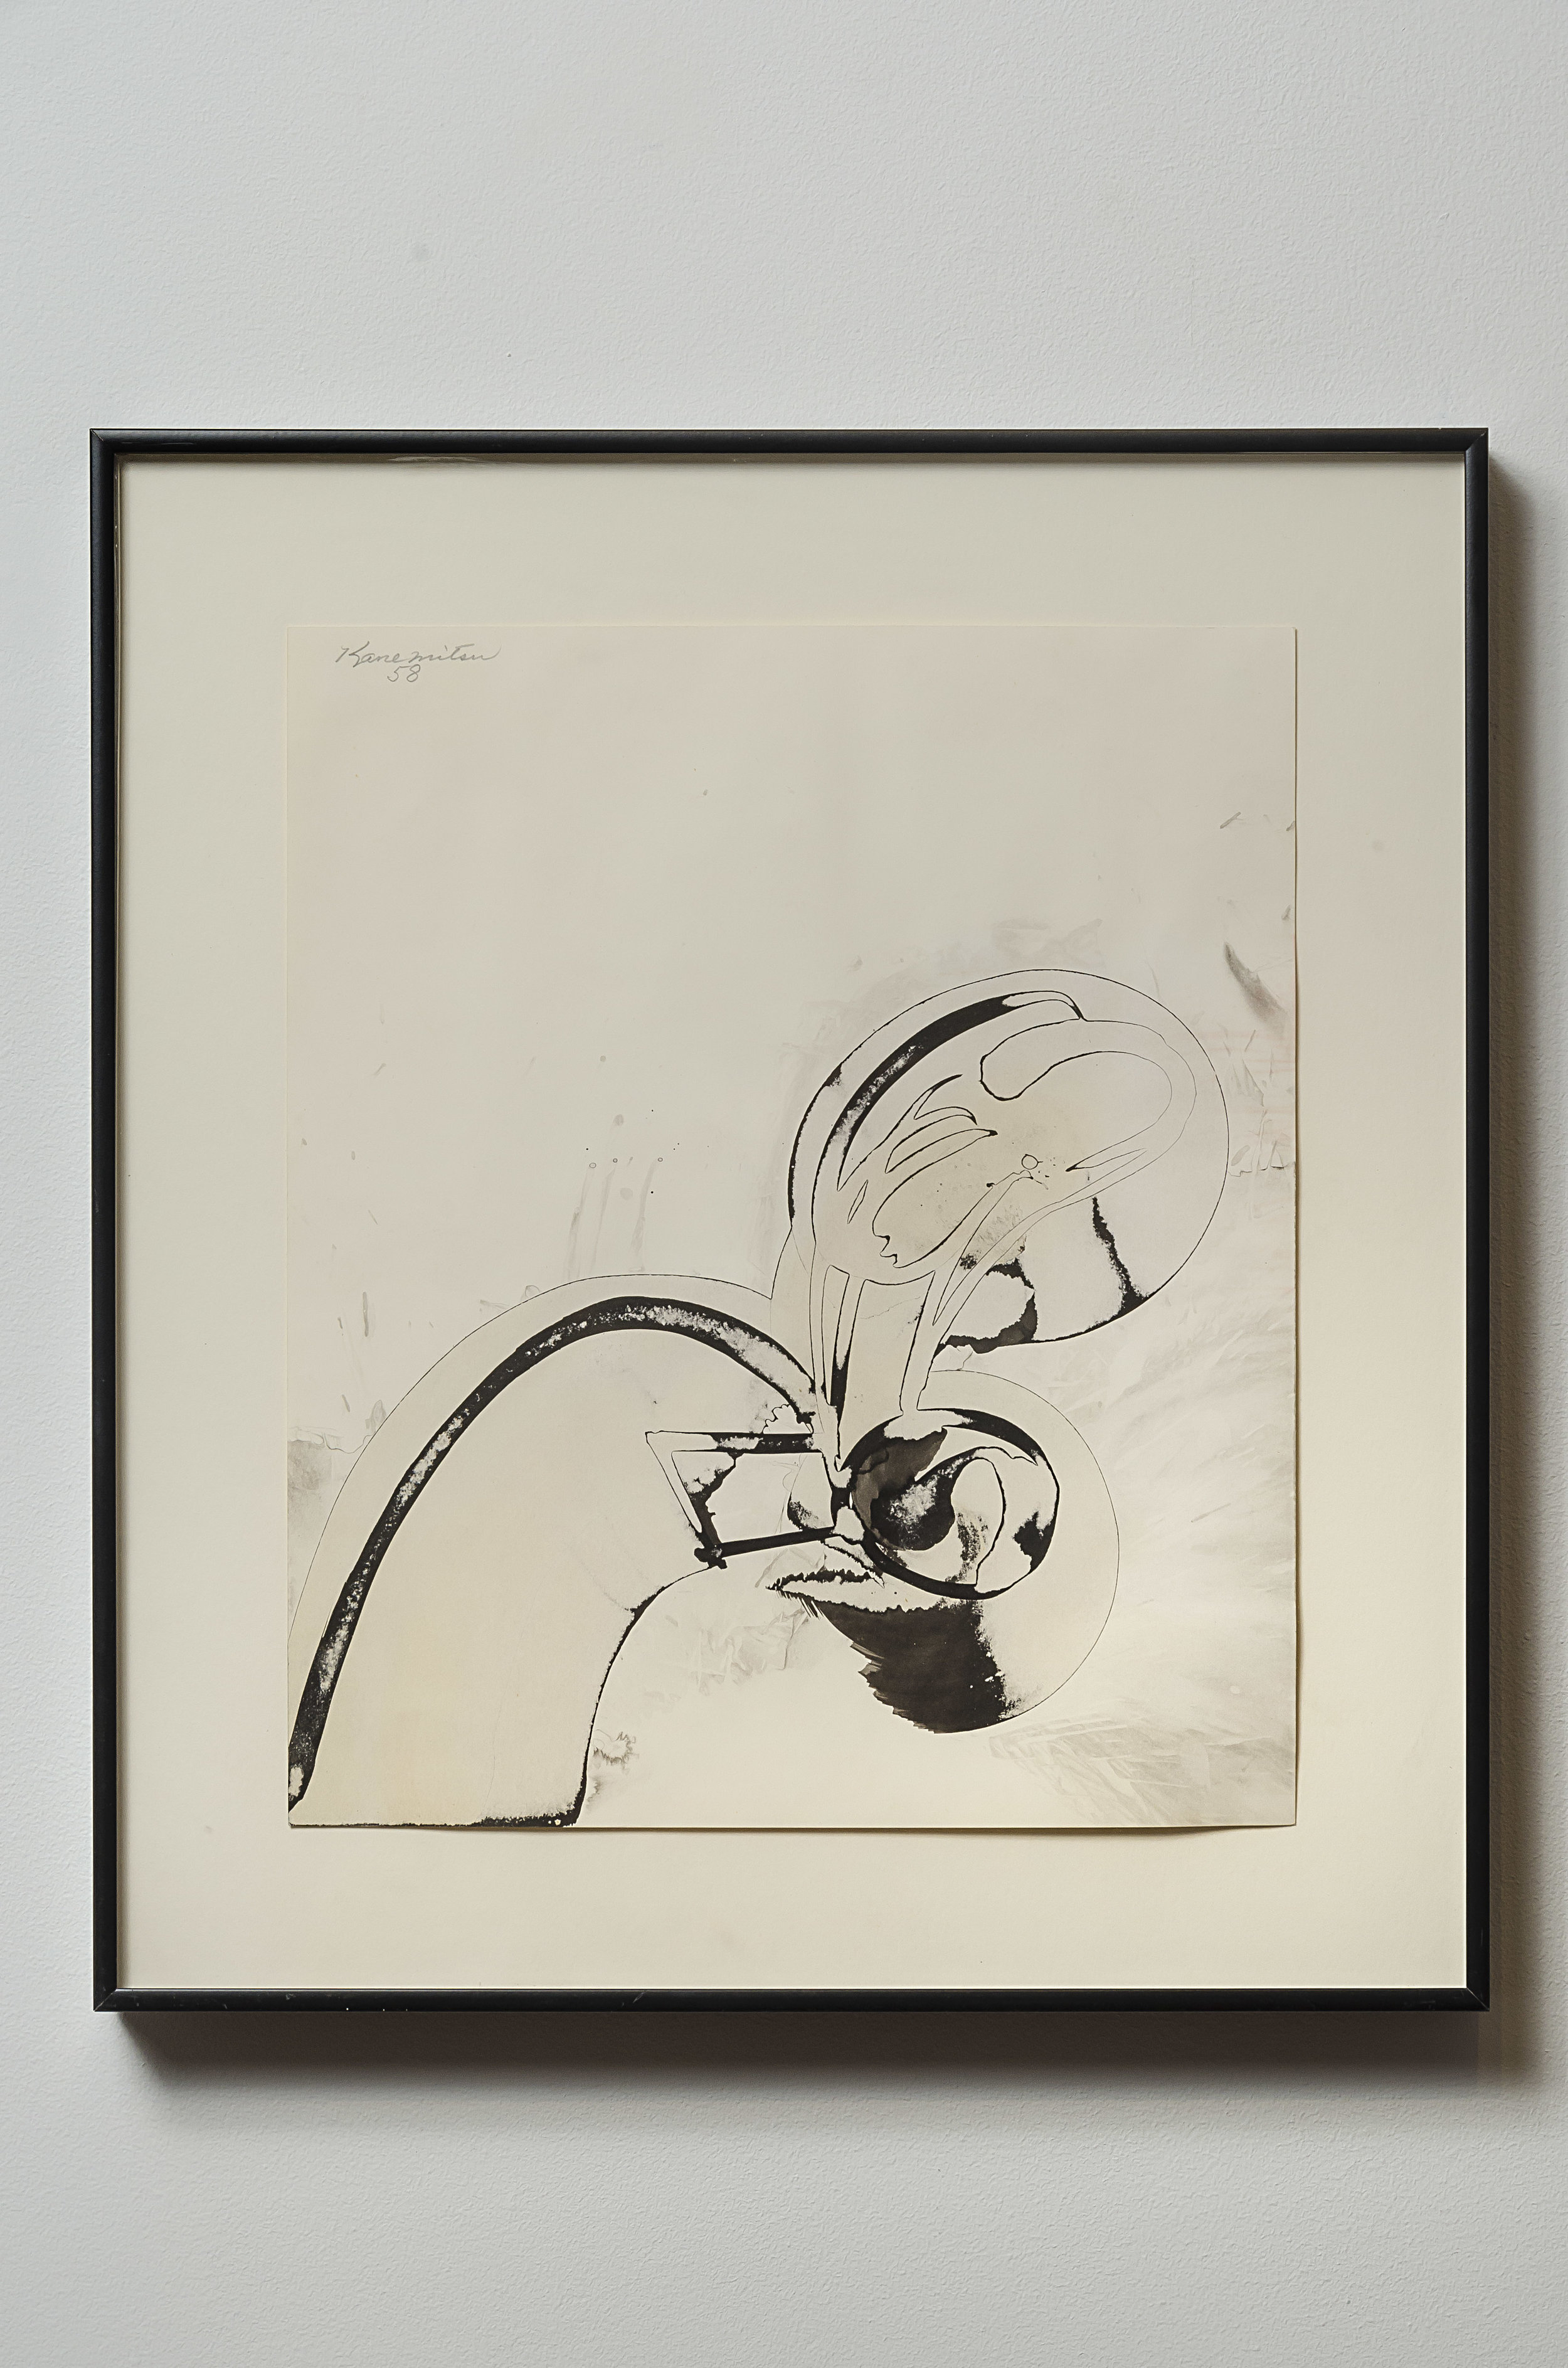 Untitled #23 , 1958 sumi ink on paper 13 x 11 inches; 33 x 27.9 centimeters